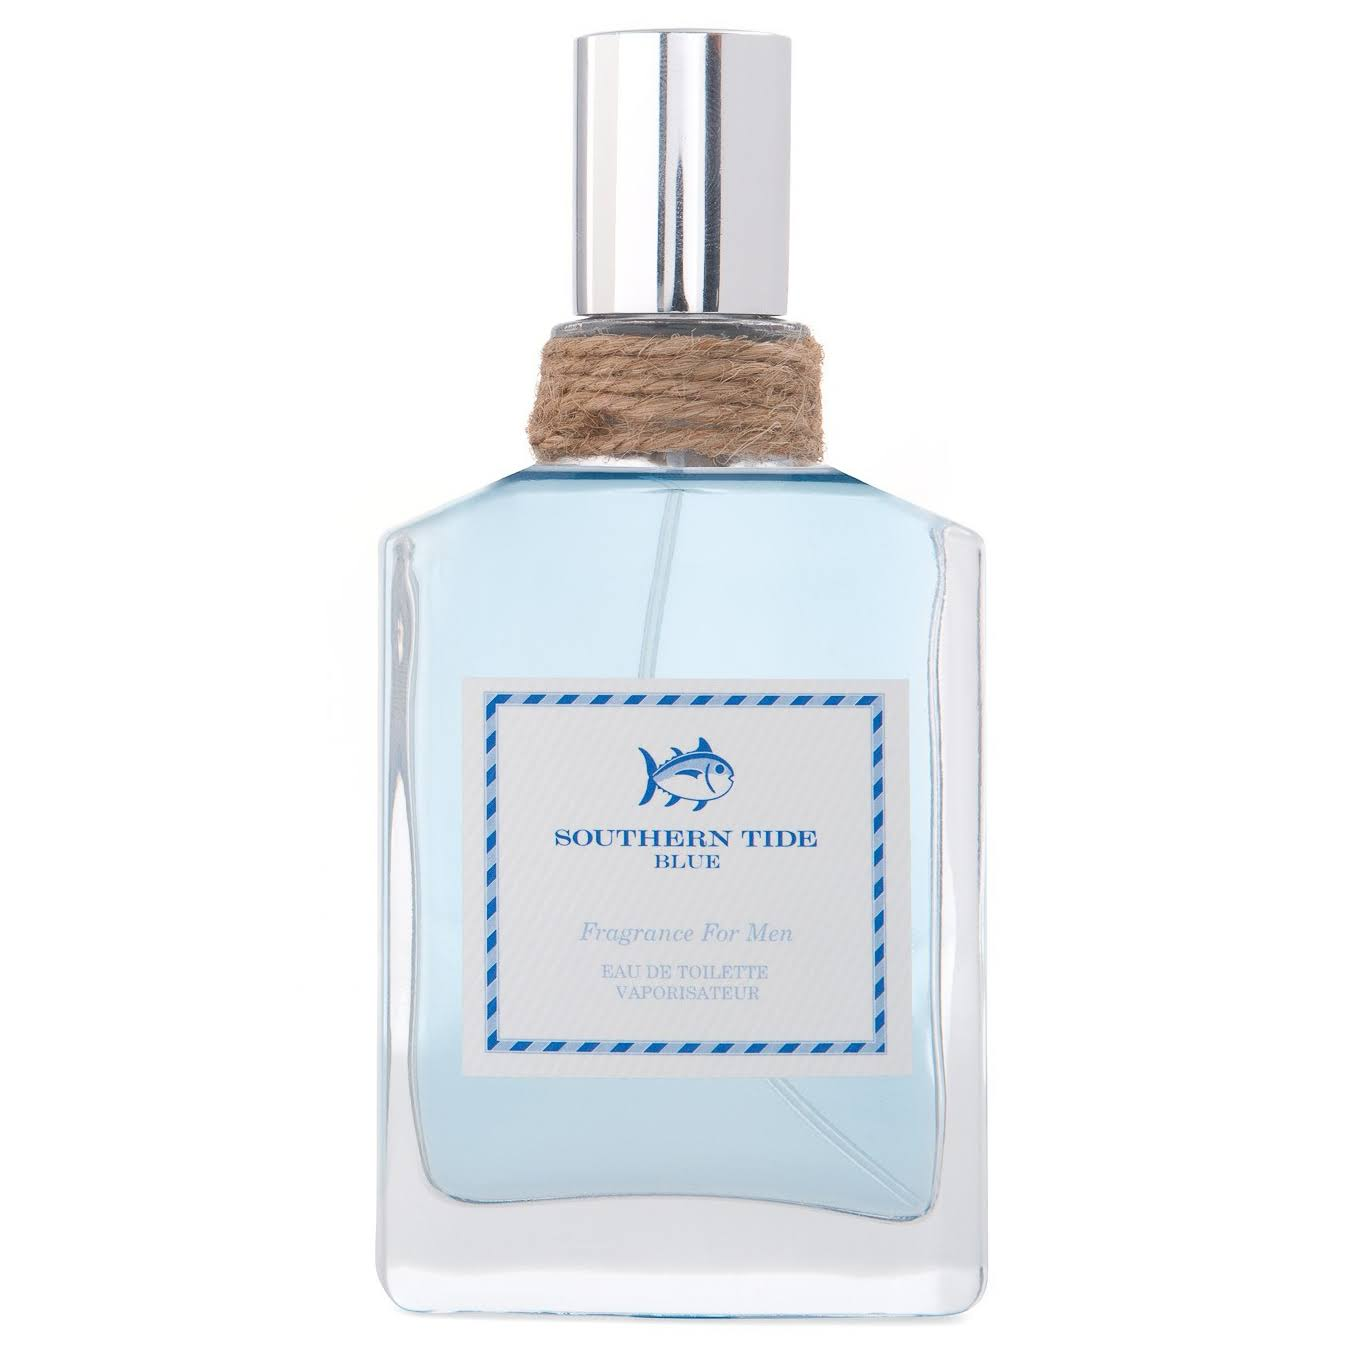 Southern Tide Blue Cologne